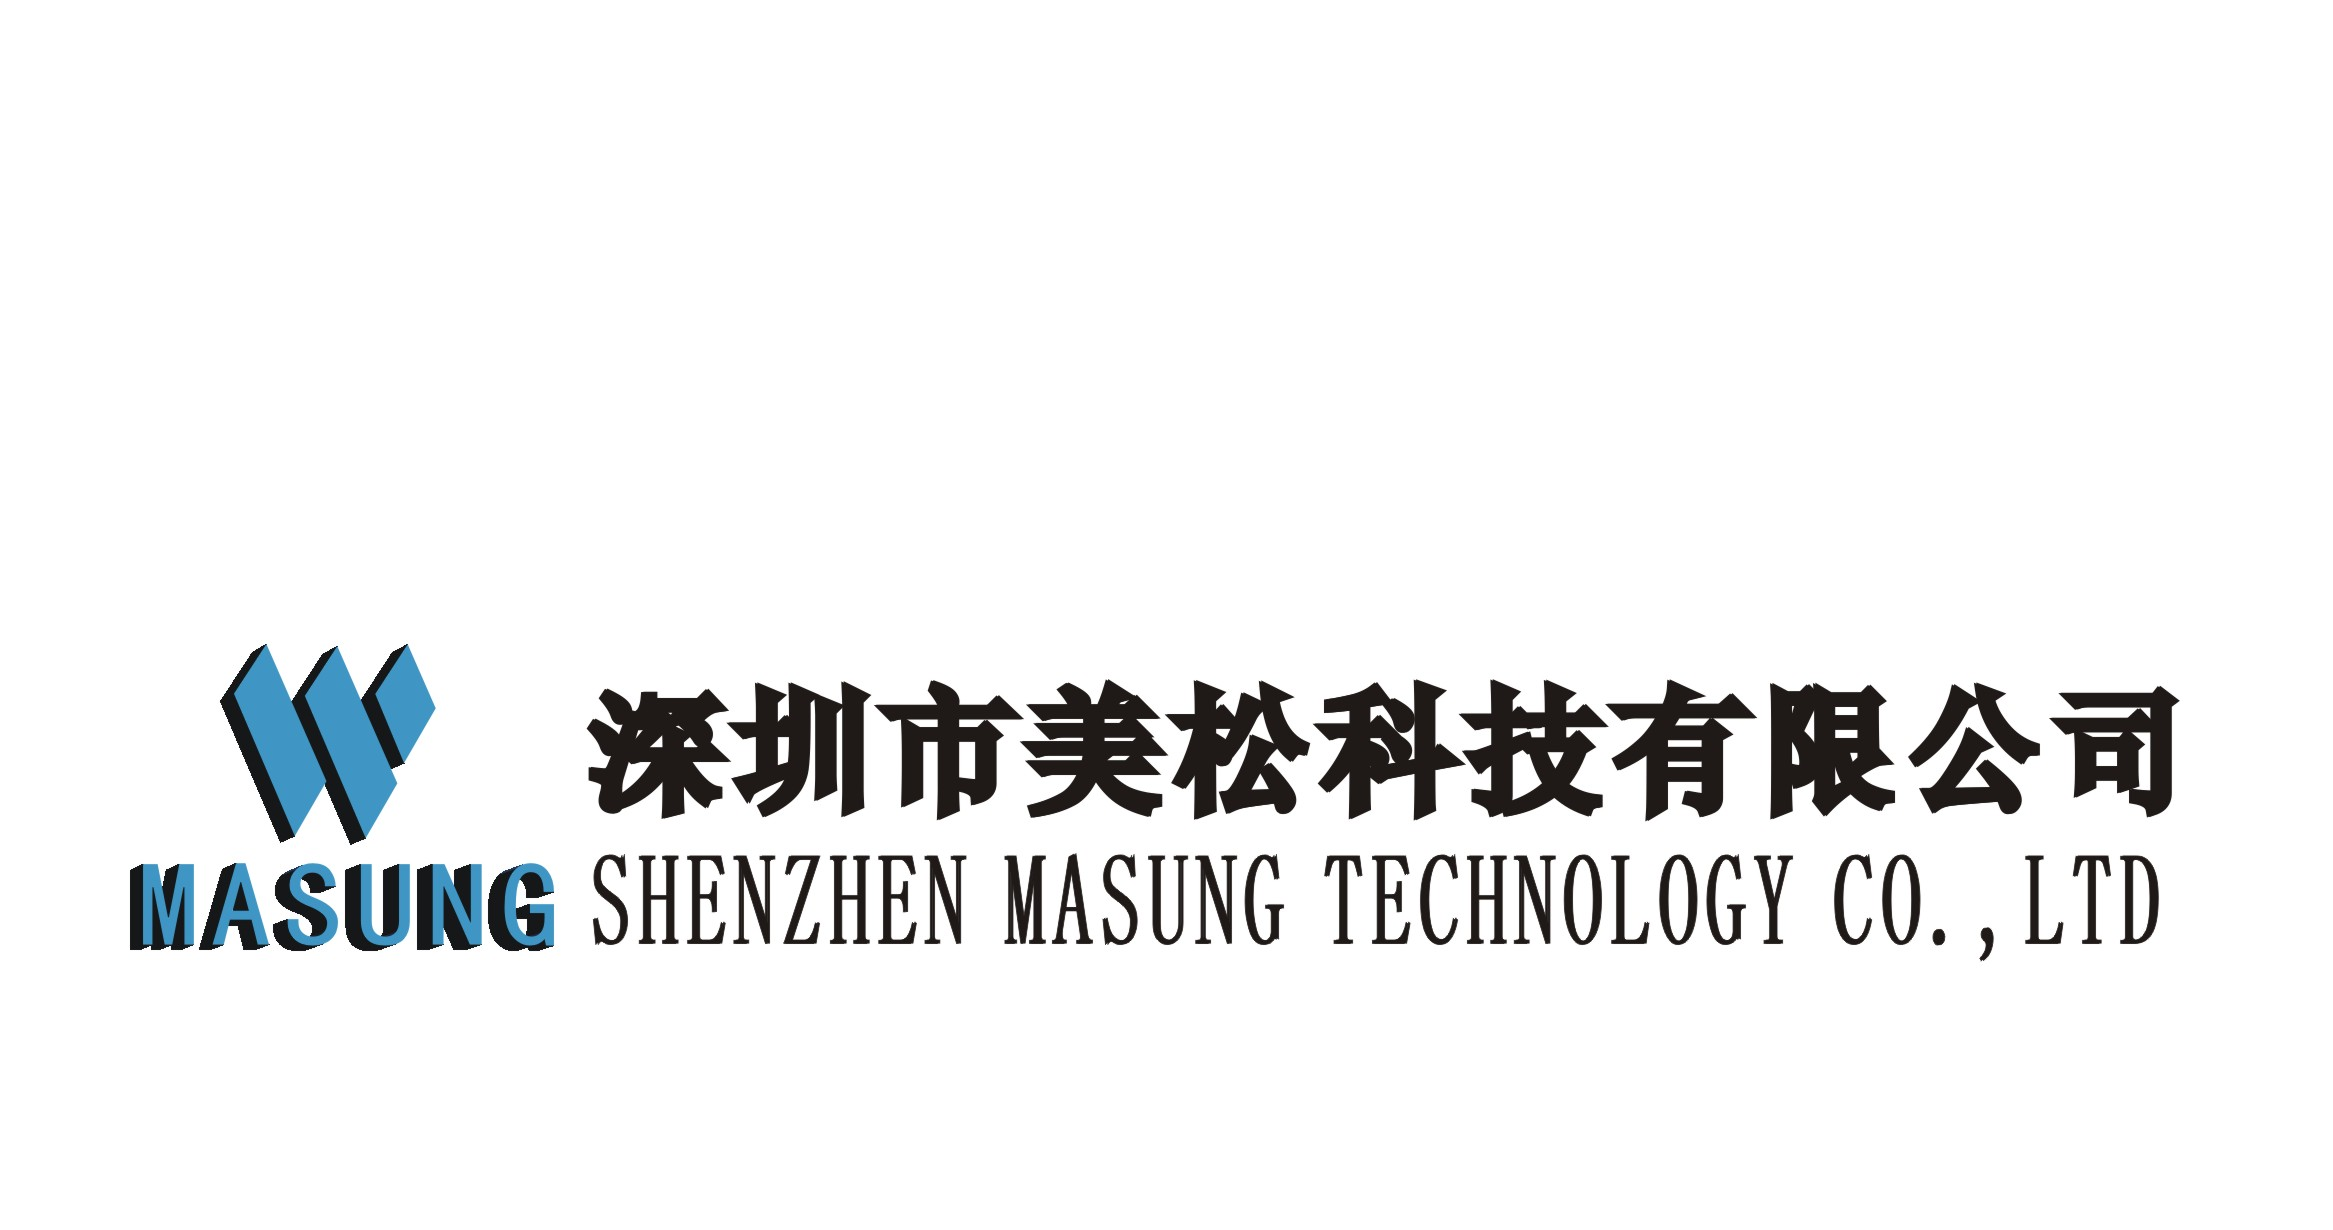 Shenzhen Masung Technology Co., Ltd